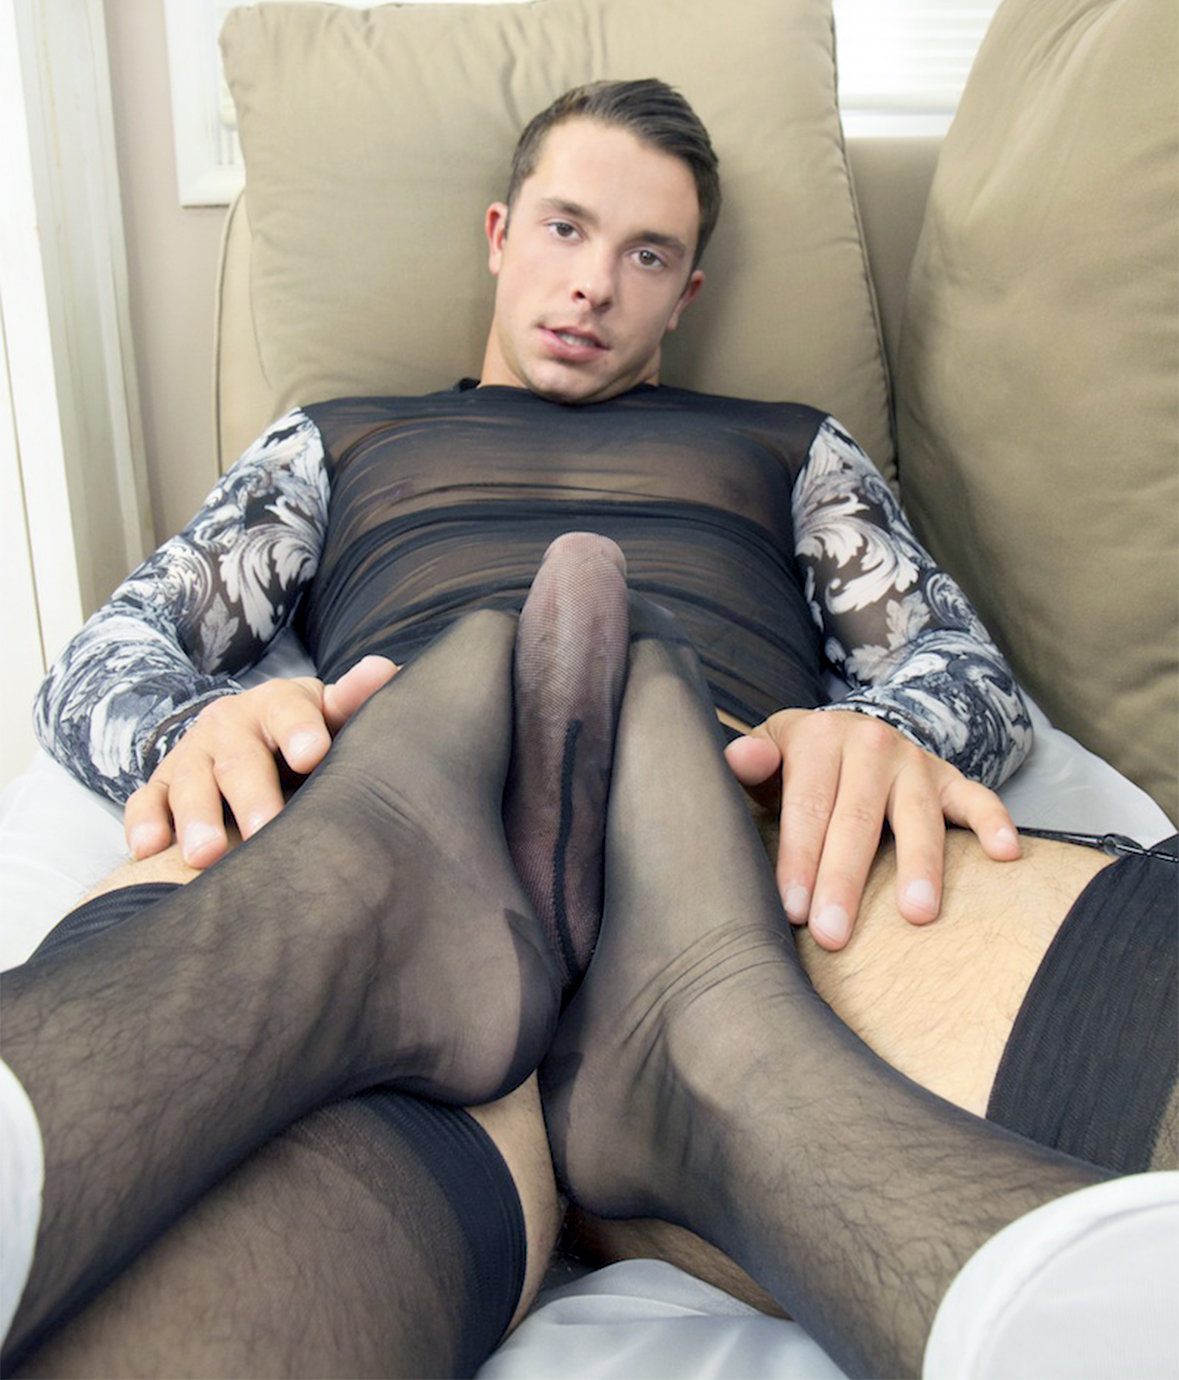 Men in pantyhose sex videos